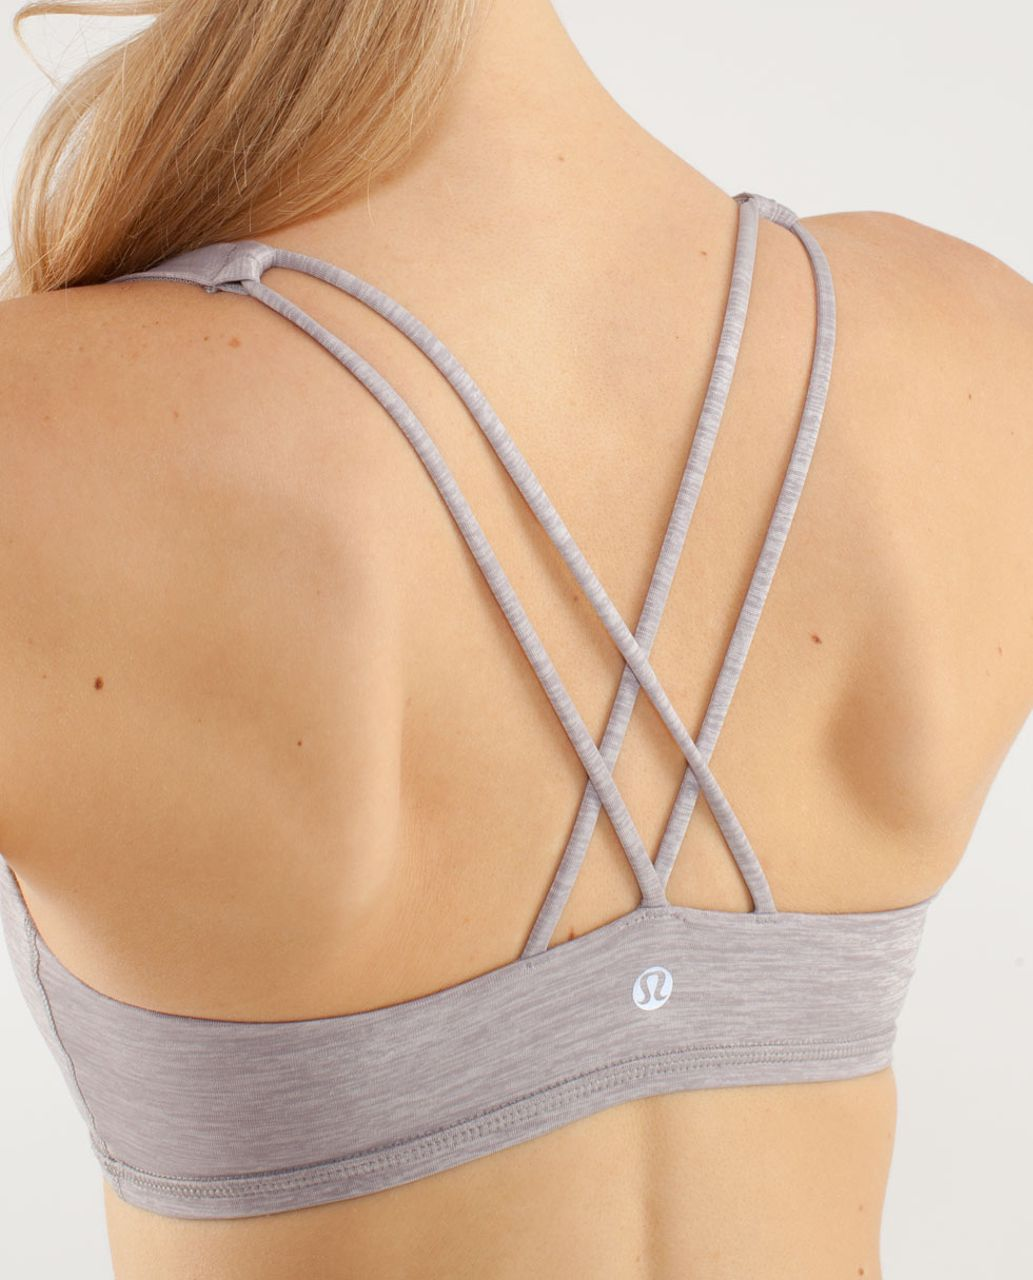 Lululemon Free To Be Bra - Metallic Silver